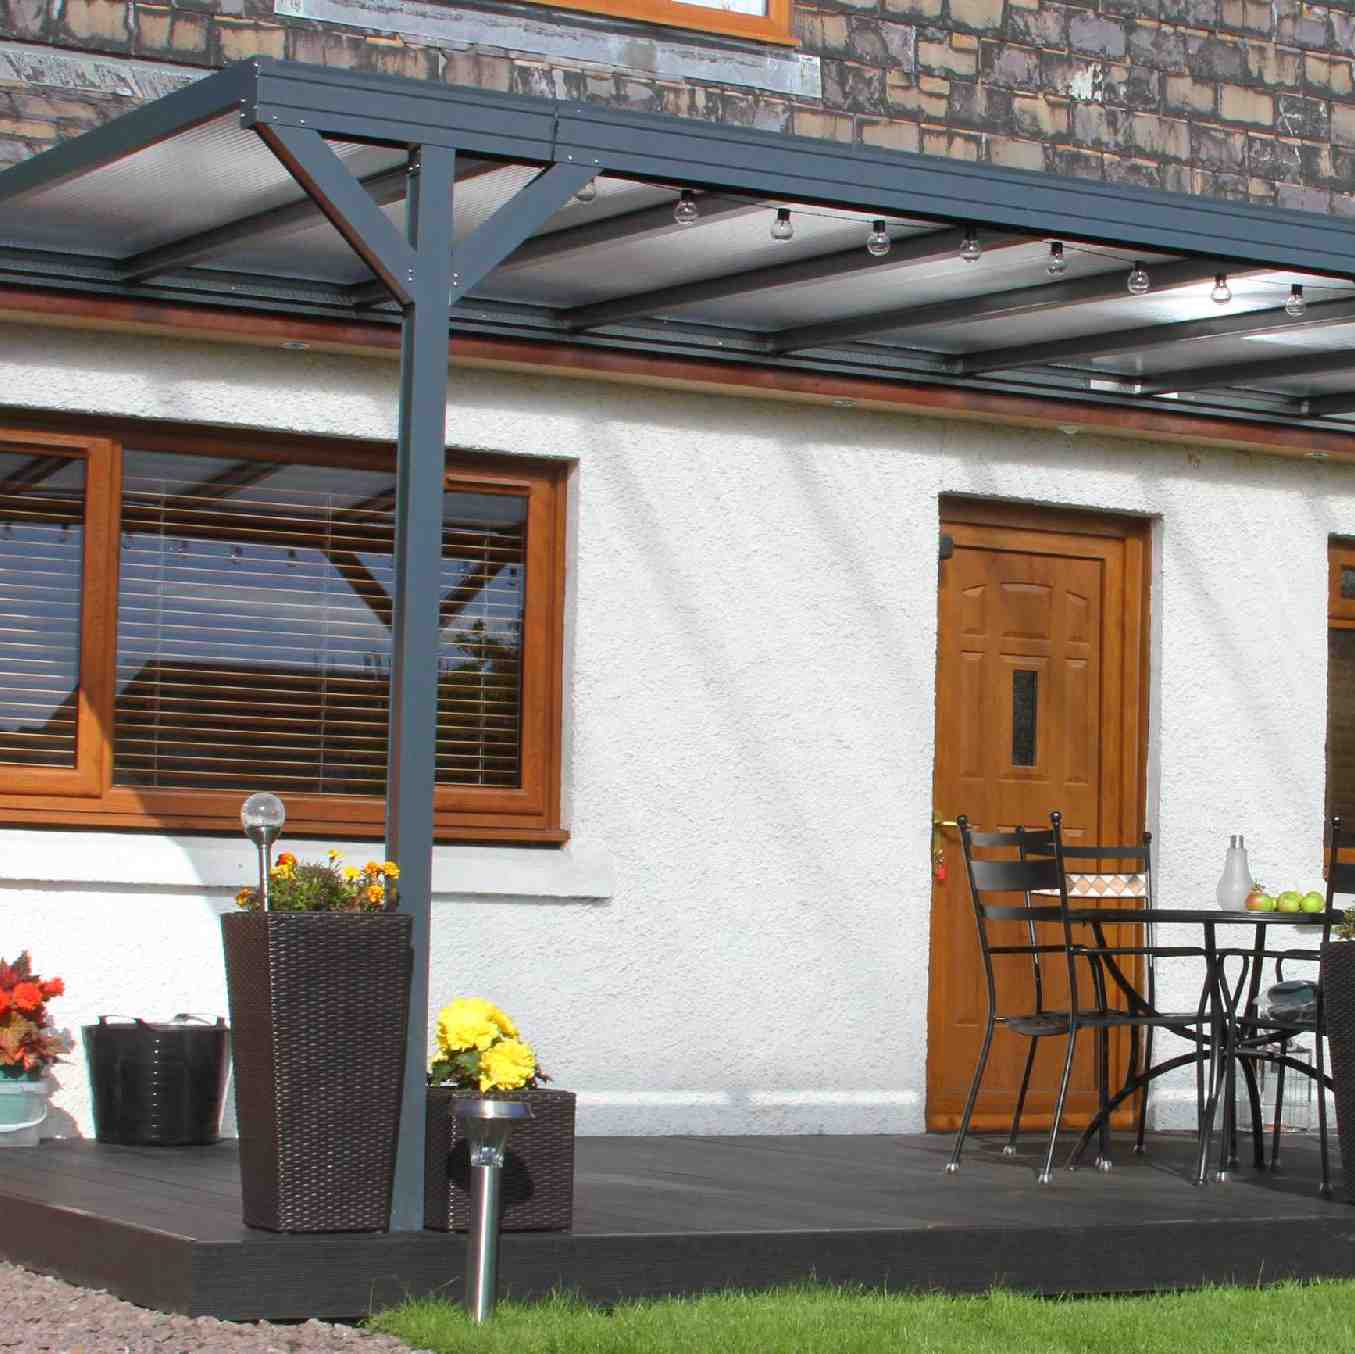 Omega Verandah, Anthracite Grey, 6mm Glass Clear Plate Polycarbonate Glazing - 6.3m (W) x 4.0m (P), (4) Supporting Posts